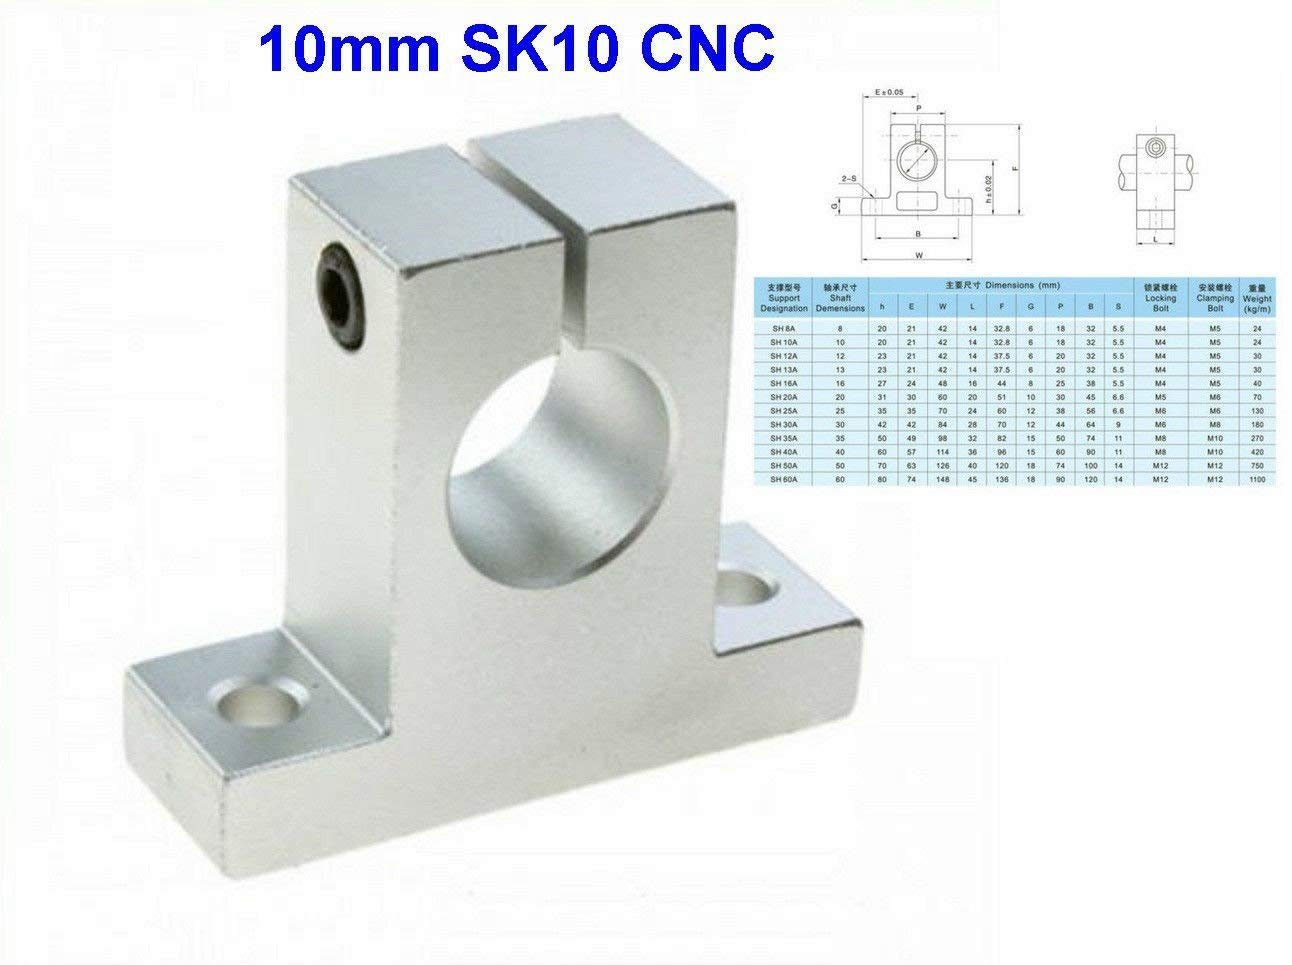 1 X Soporte para guías lineales 10mm Sk10 CNC Bearing Cutter 3D ...